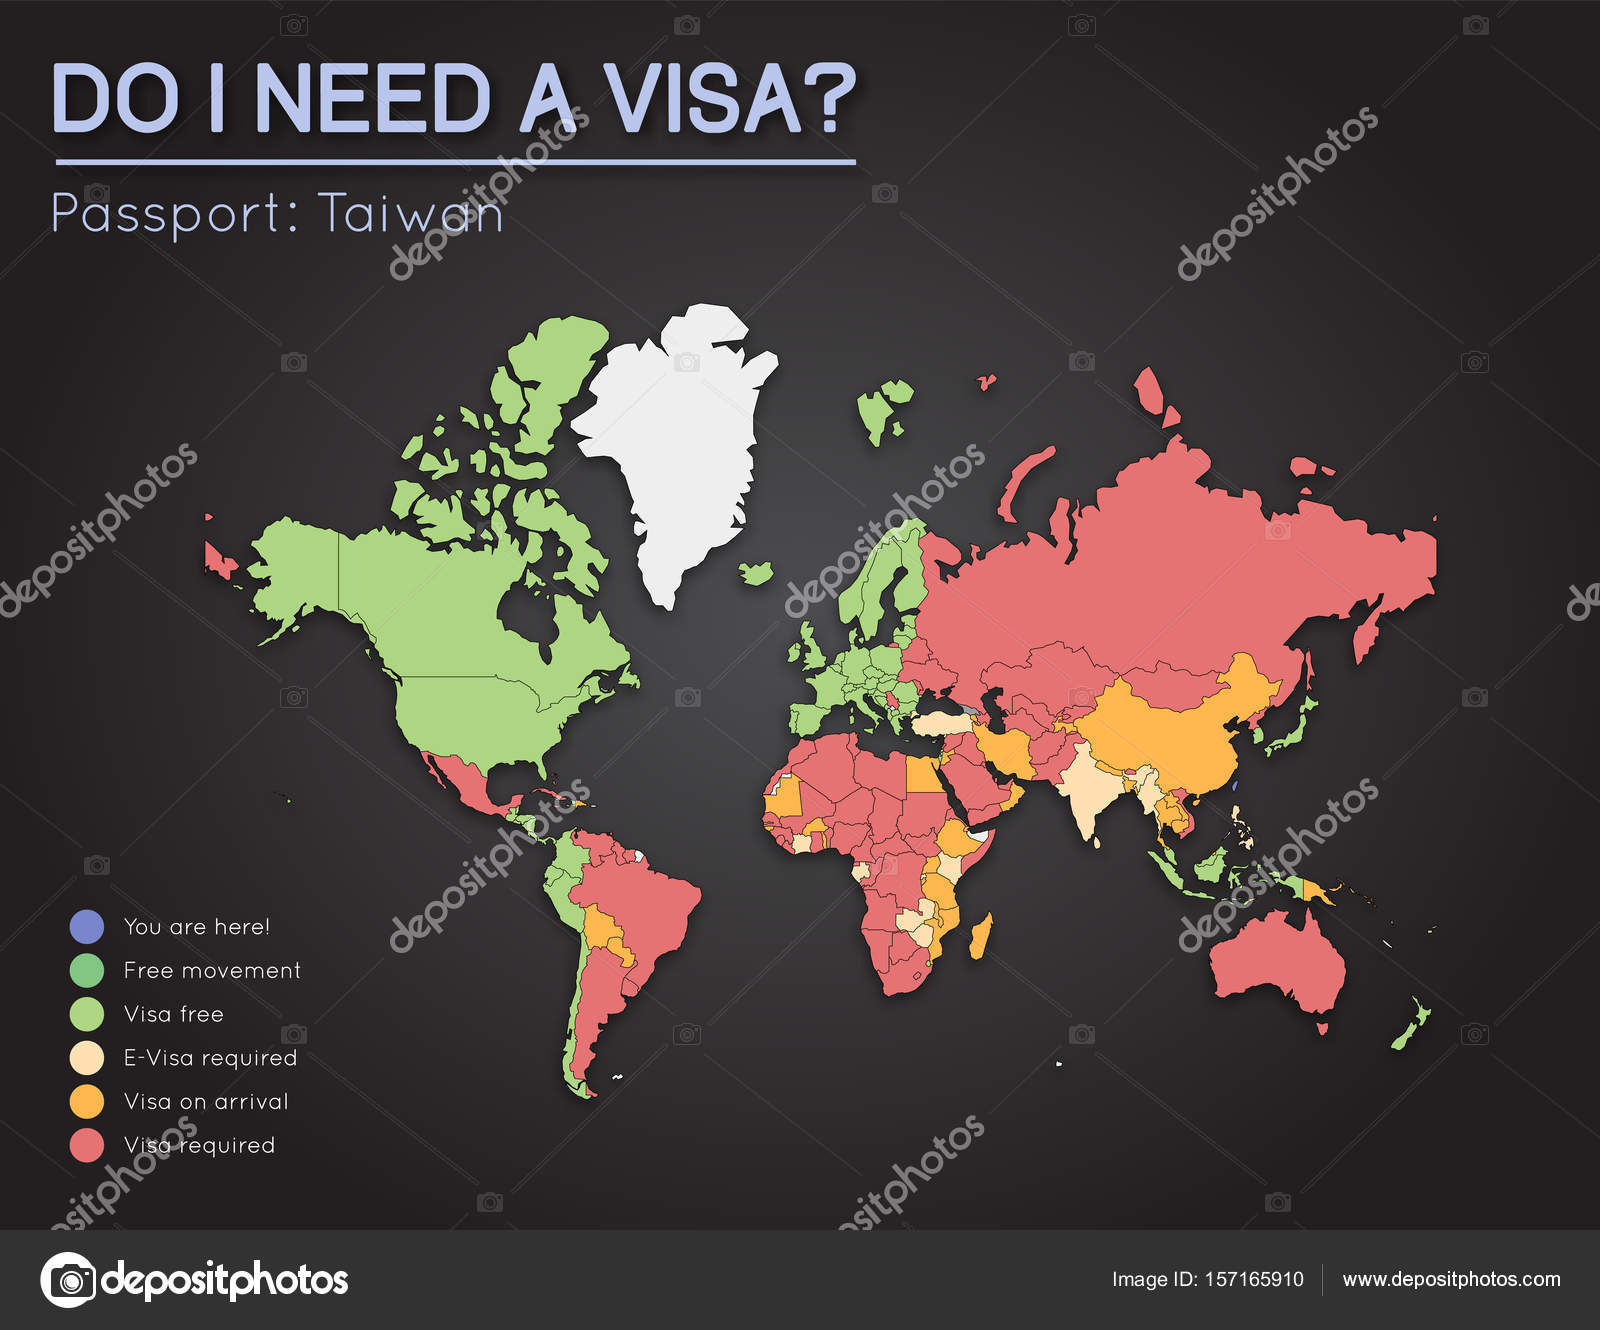 Visas information for taiwan passport holders year 2017 world map visas information for taiwan passport holders year 2017 world map infographics showing visa stock vector gumiabroncs Images